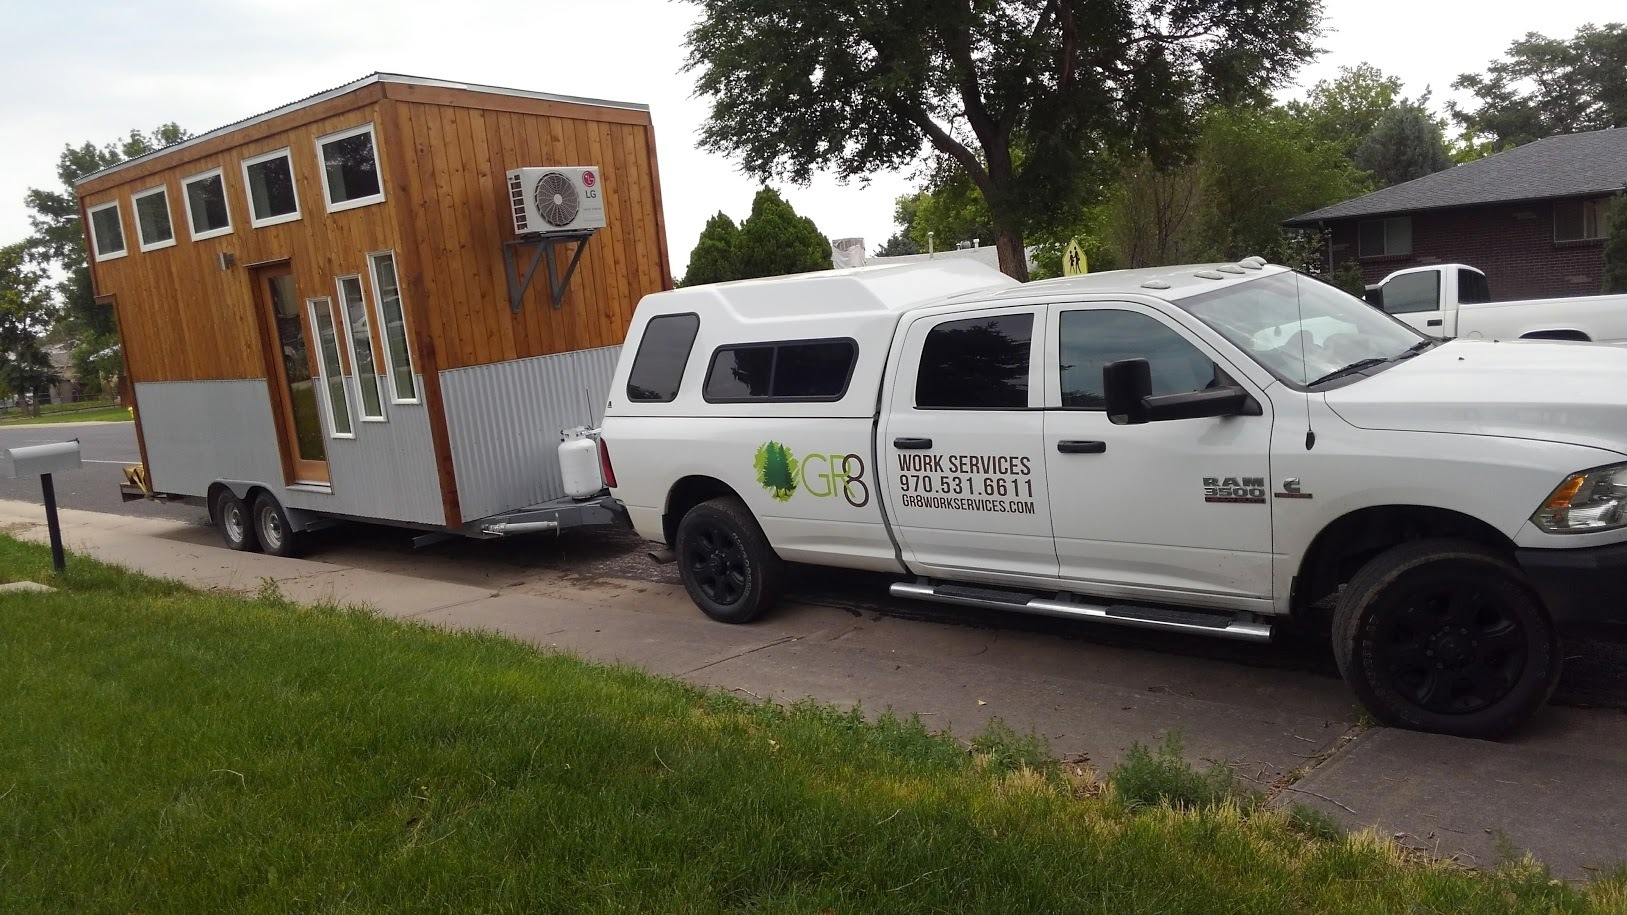 Our tiny home is ready to tow to your new home. :)